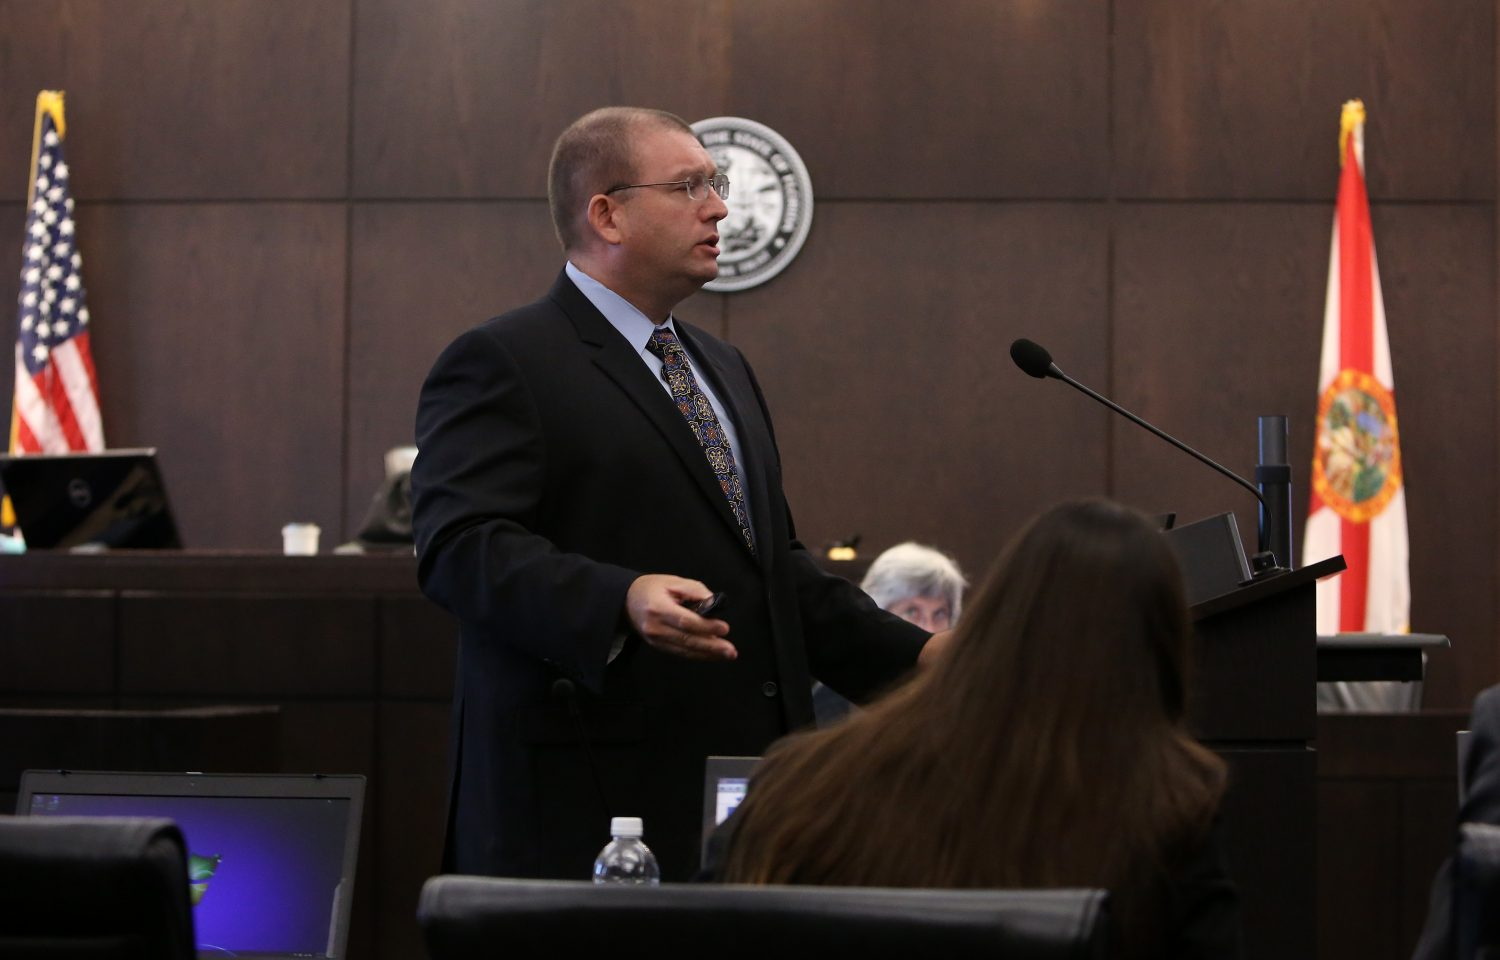 Prosecutor Brian Kramer gives opening statements in the case against Pedro Bravo in courtroom 1B of the Alachua County Criminal Justice Center Tuesday, August 5, 2014.  (Doug Finger/The Gainesville Sun/Pool)